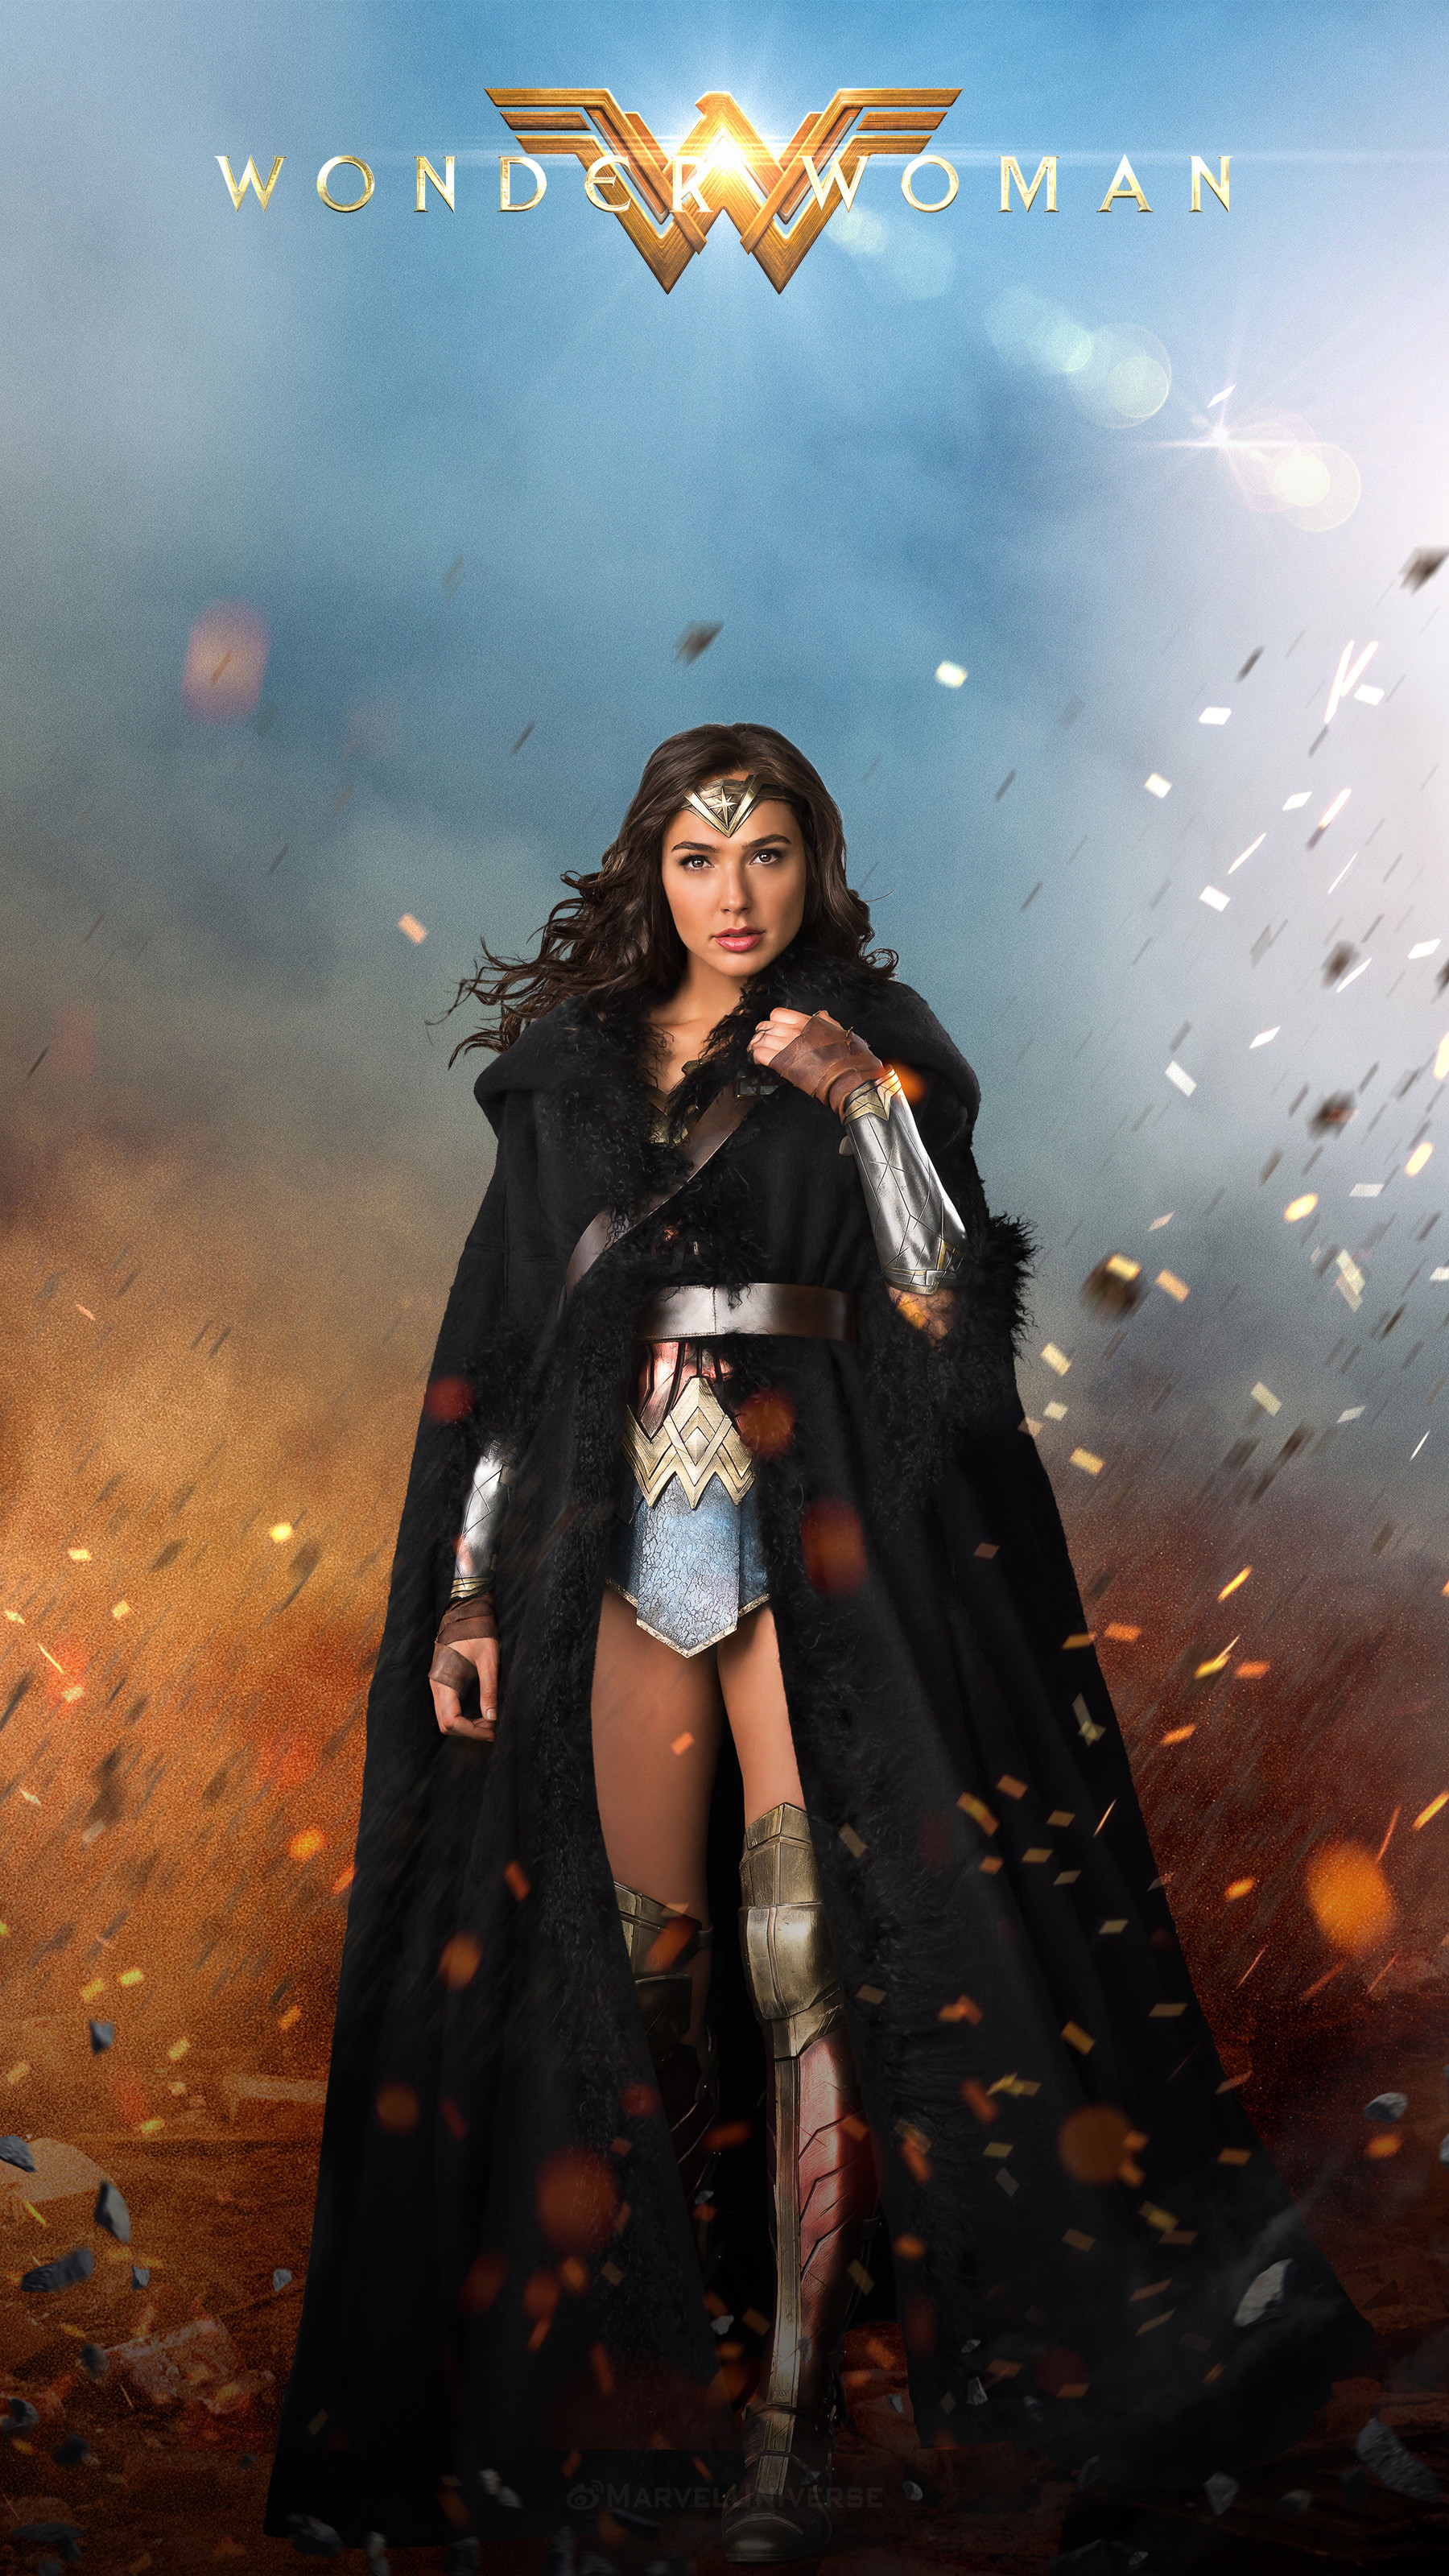 Res: 1800x3200, Wonder Woman Wallpaper 4 by Chenshijie9095 Wonder Woman Wallpaper 4 by  Chenshijie9095